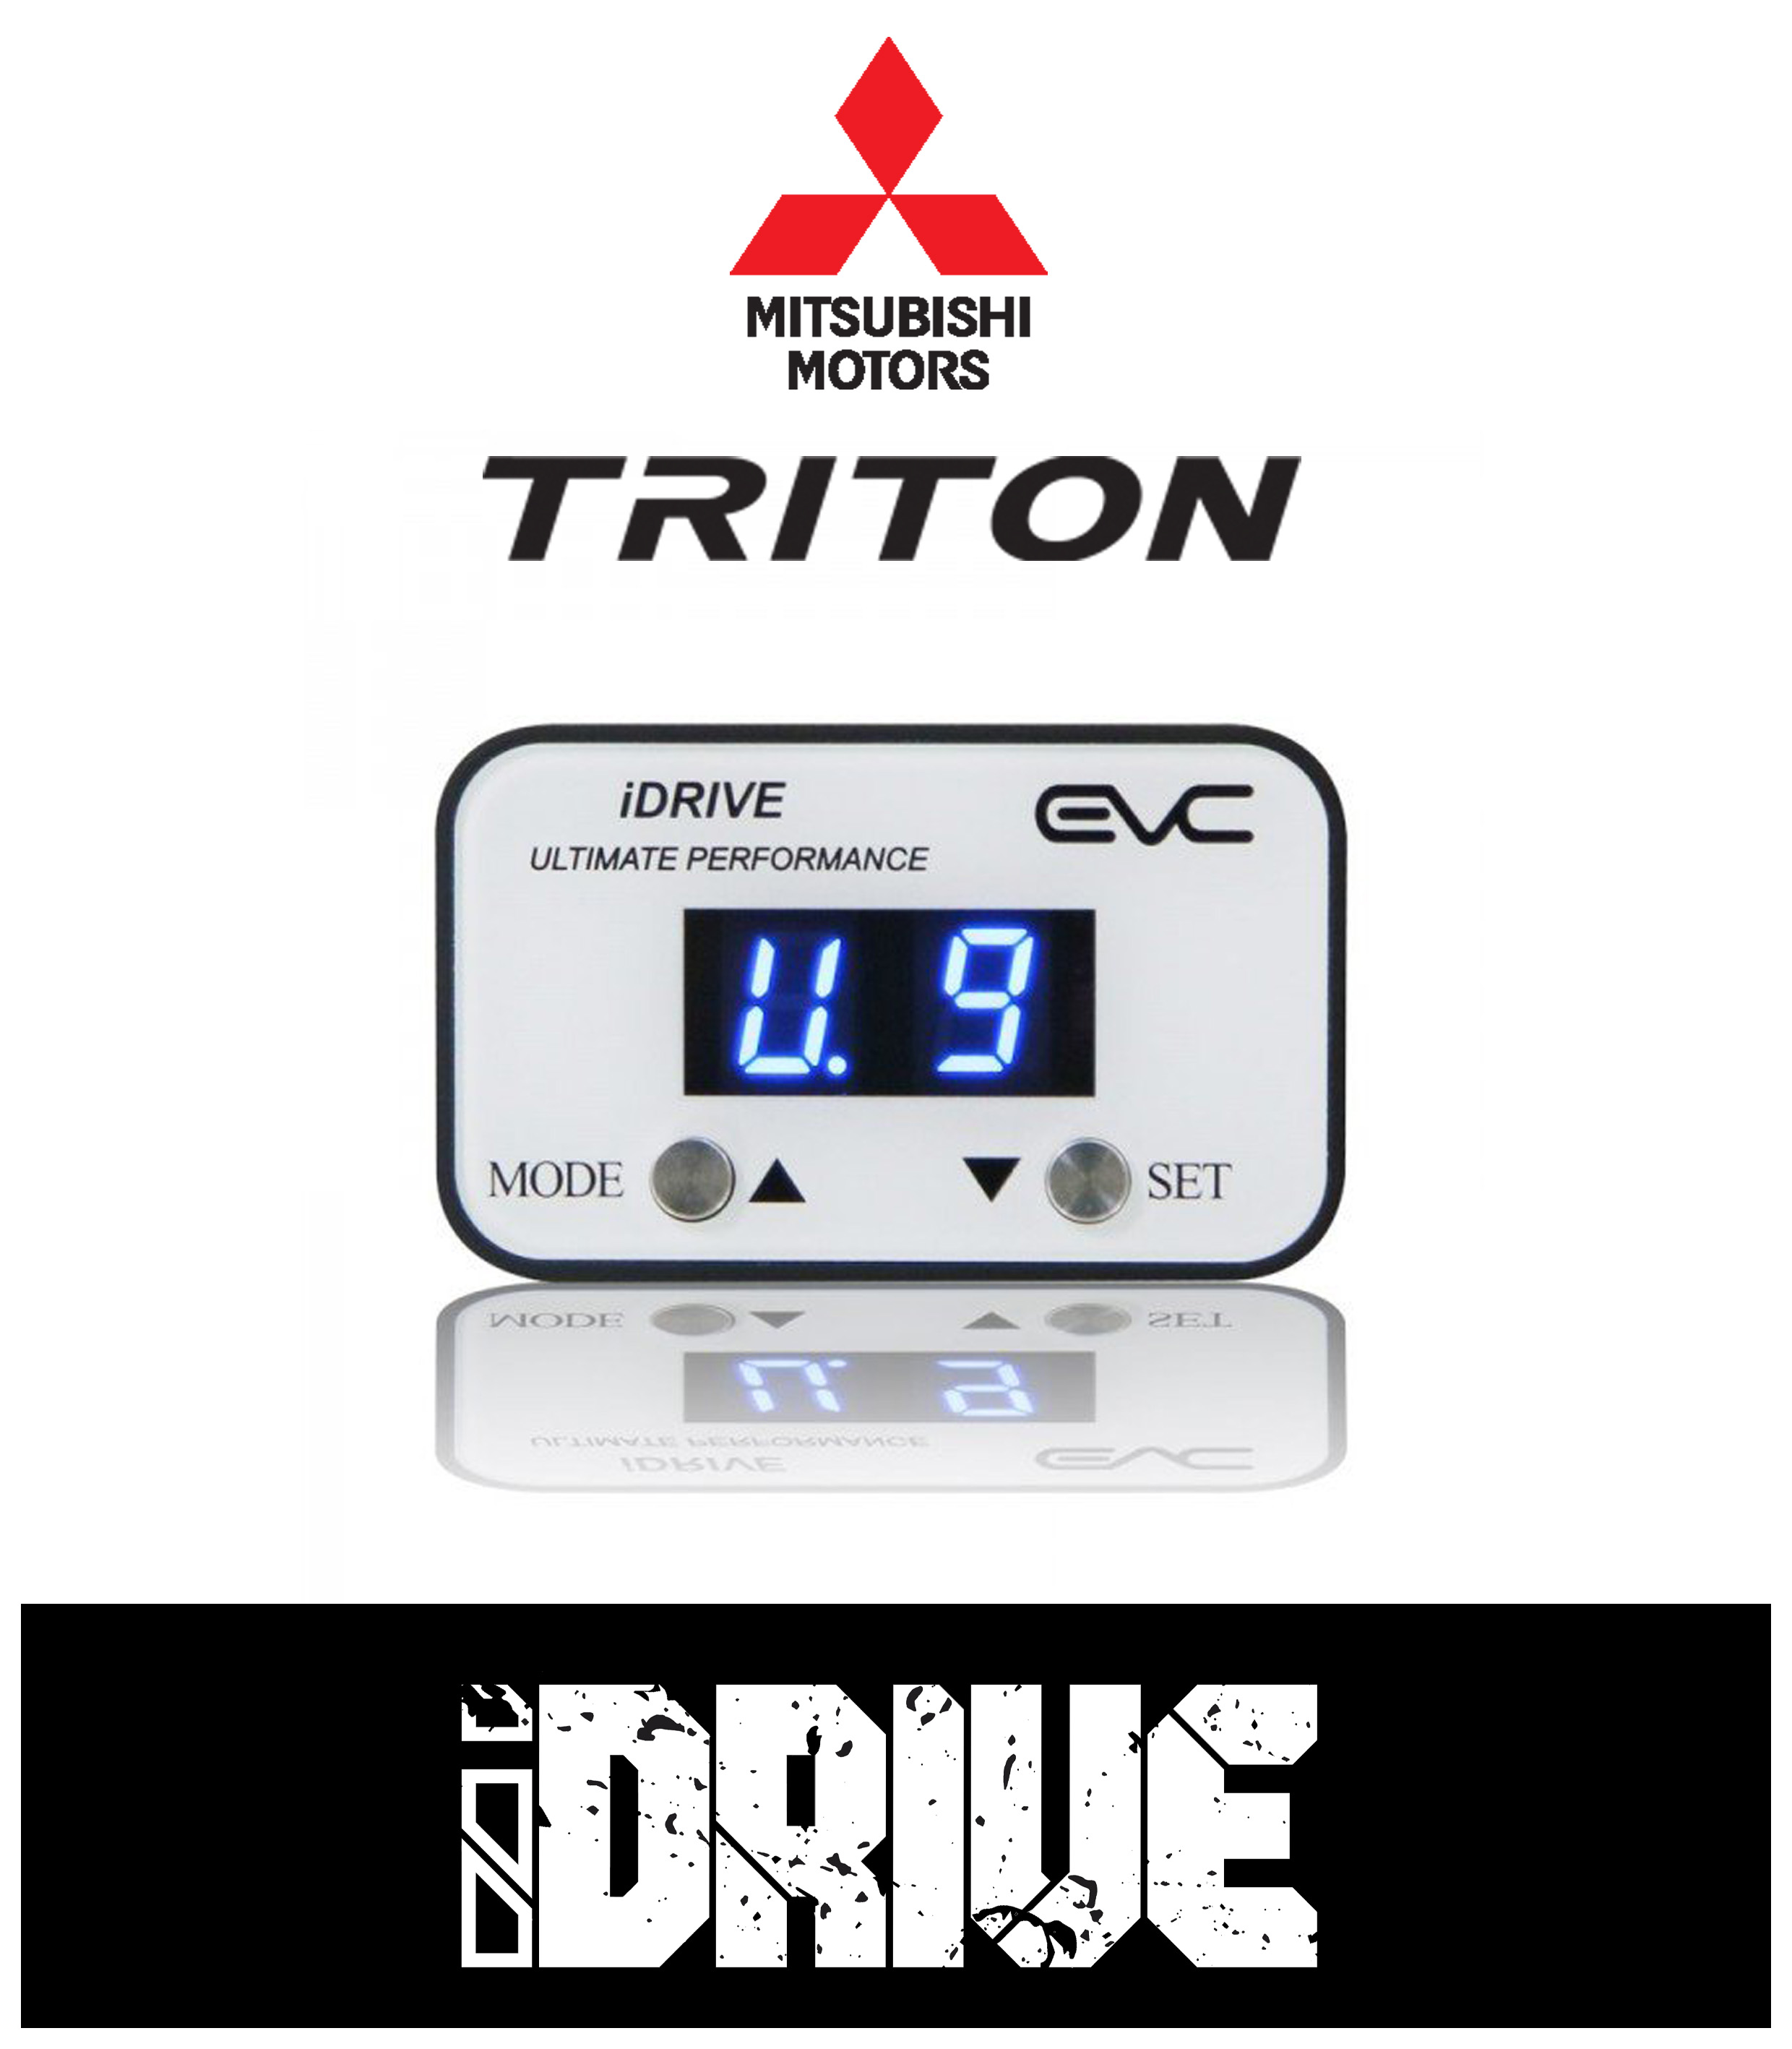 WEbsite_Triton_iDRIVE_Thumbnail_edited-1.jpg